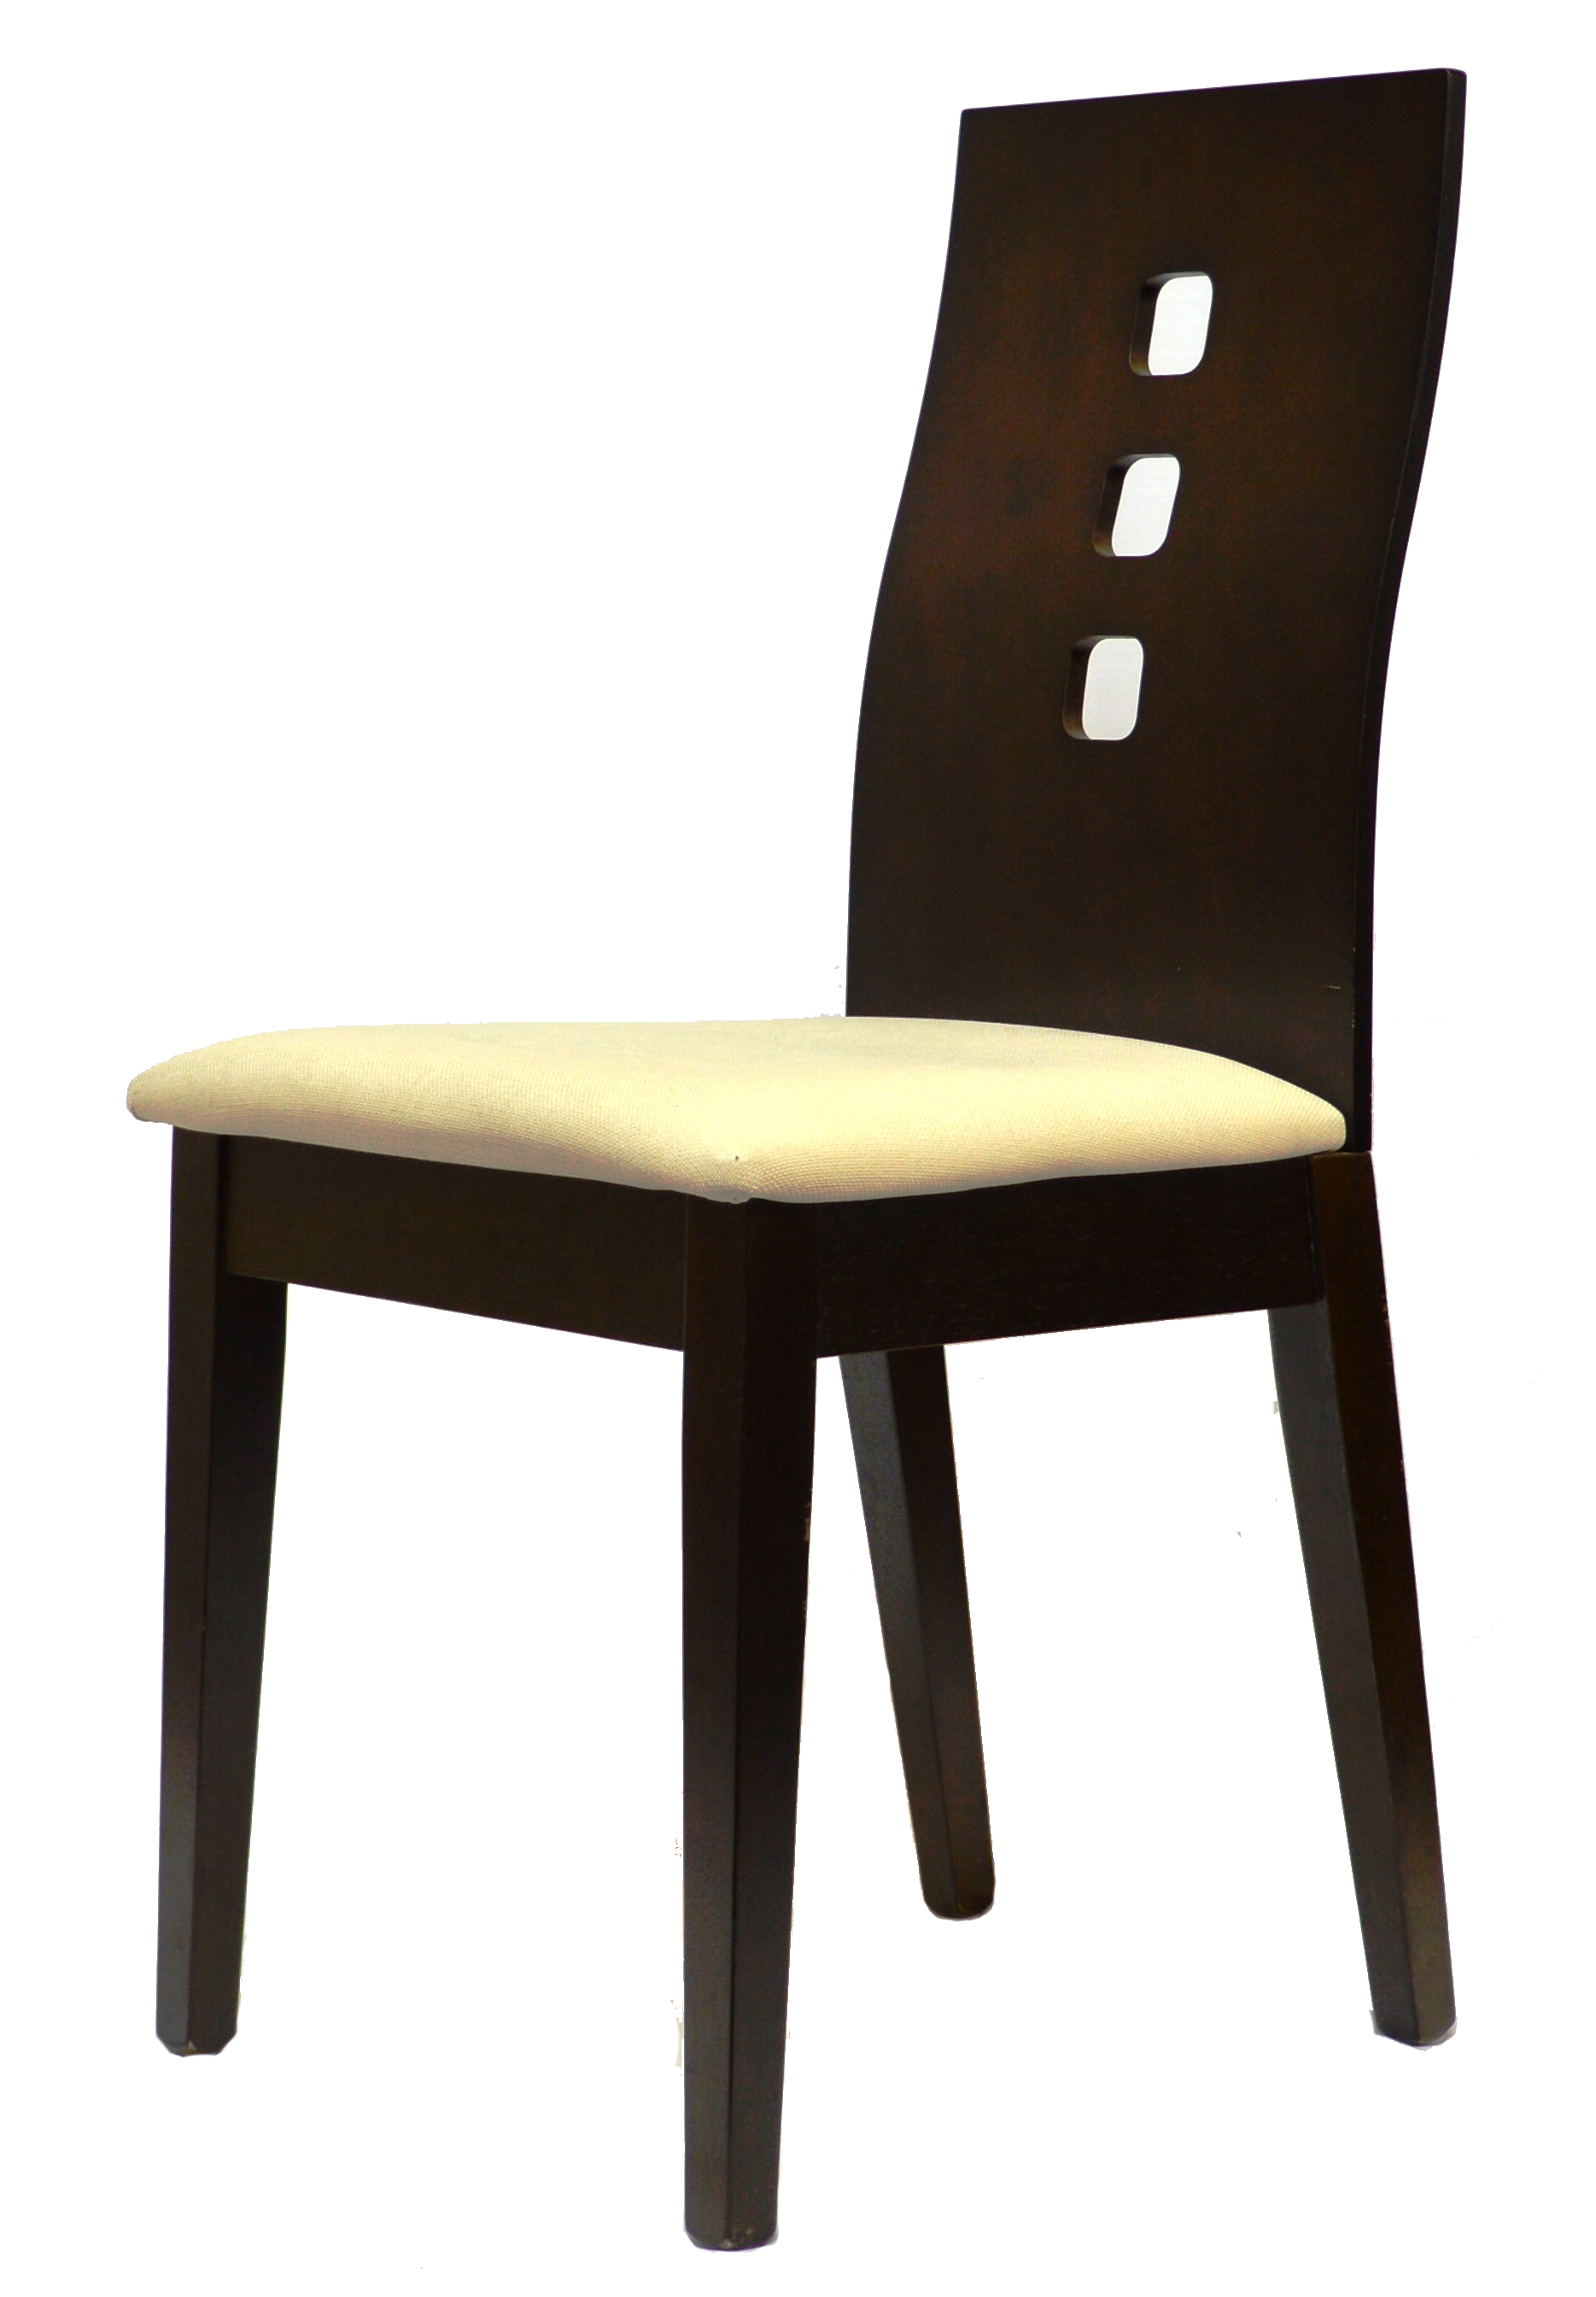 Soho Dining Chair Toronto Furniture Rental For Home Staging By Luxury Furniture